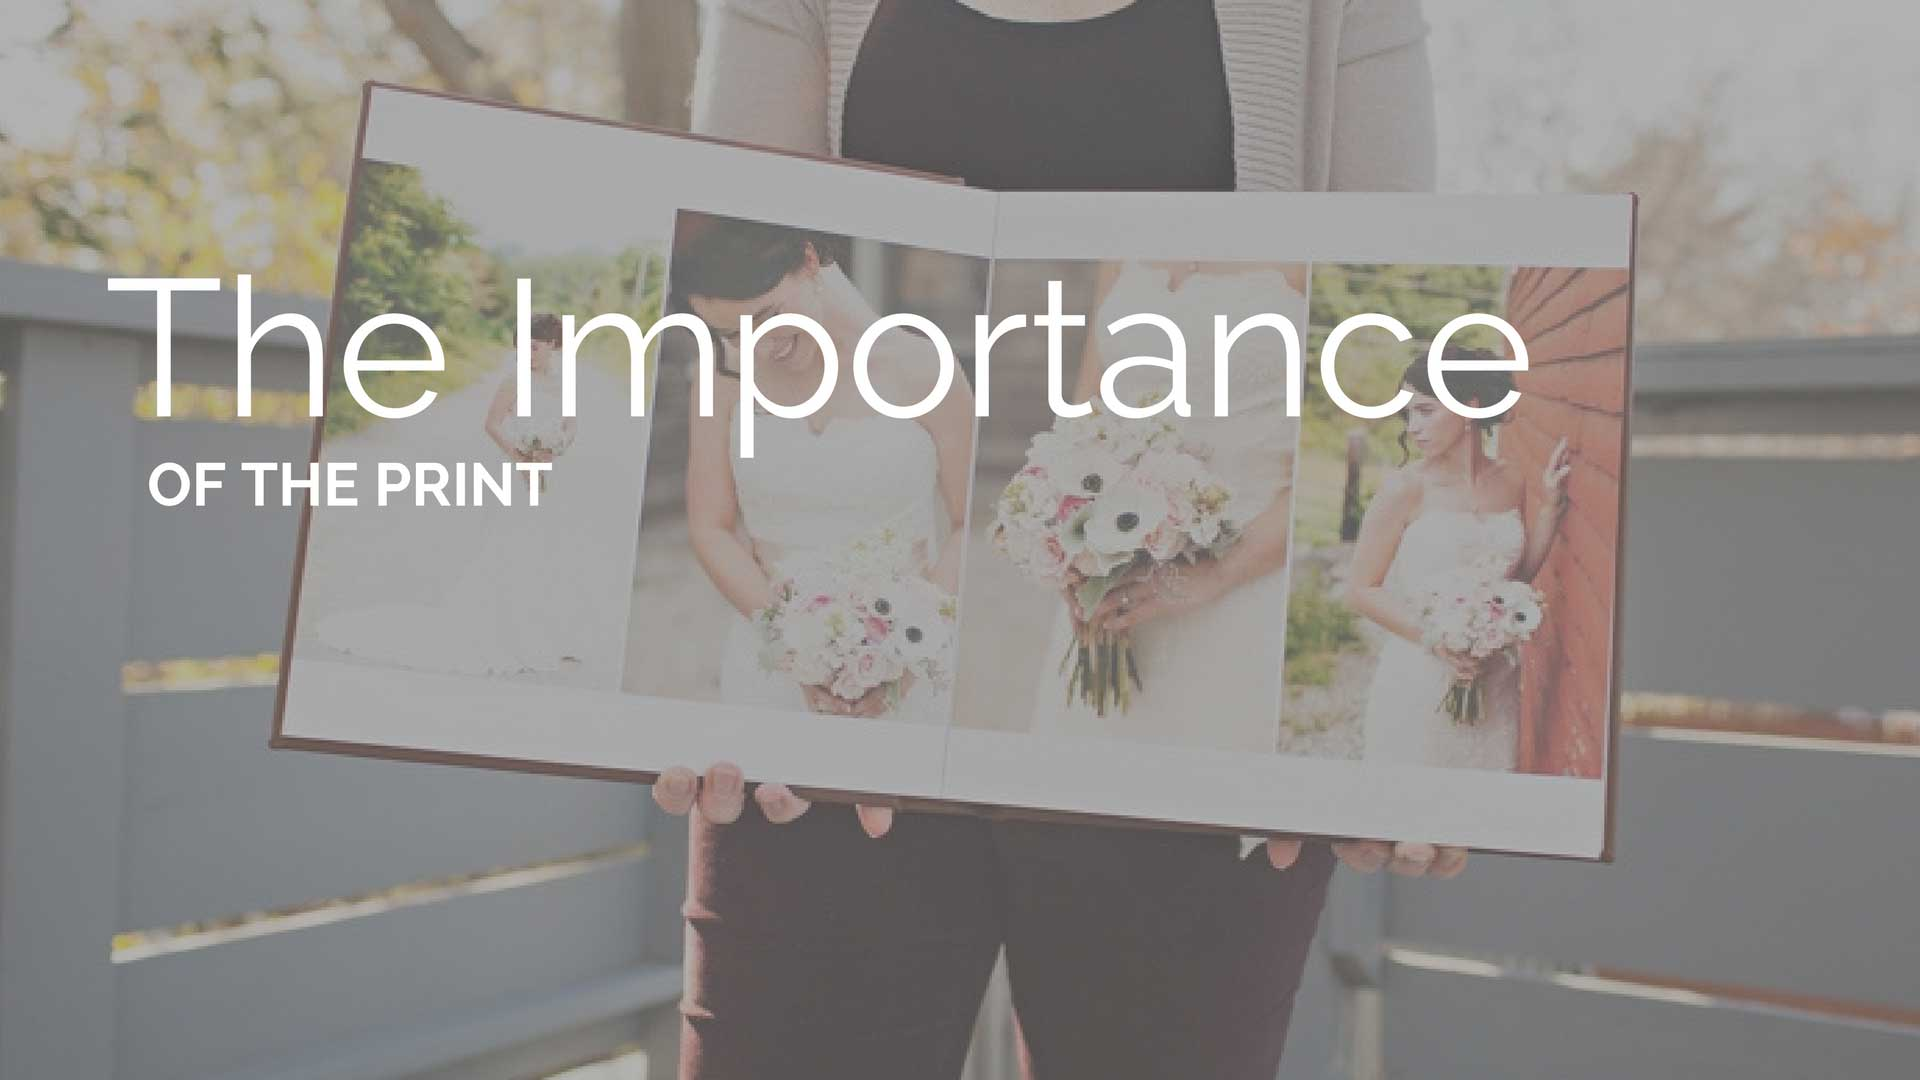 The Importance of The Print